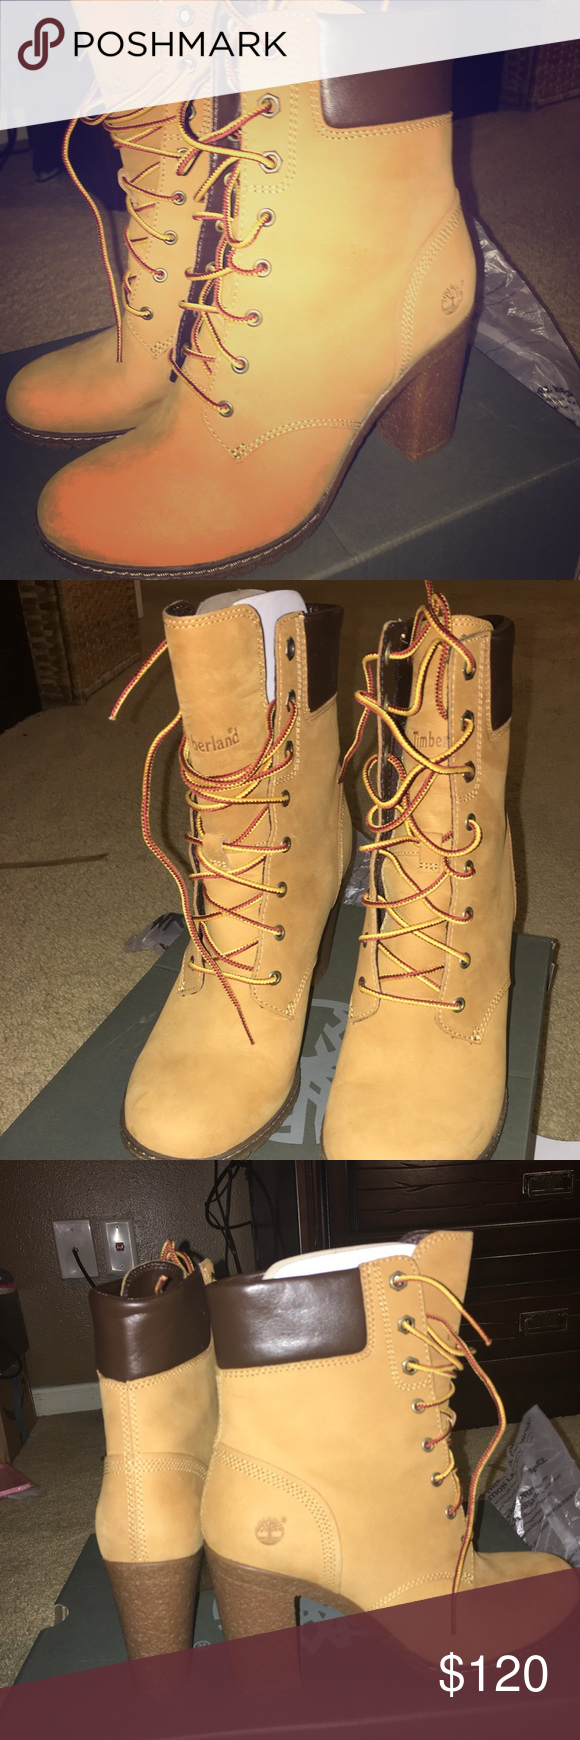 Timberland 3 4 heel boots Worn once. No damages. In great condition  w original box Timberland Shoes Heeled Boots 49a2b99b0c0f